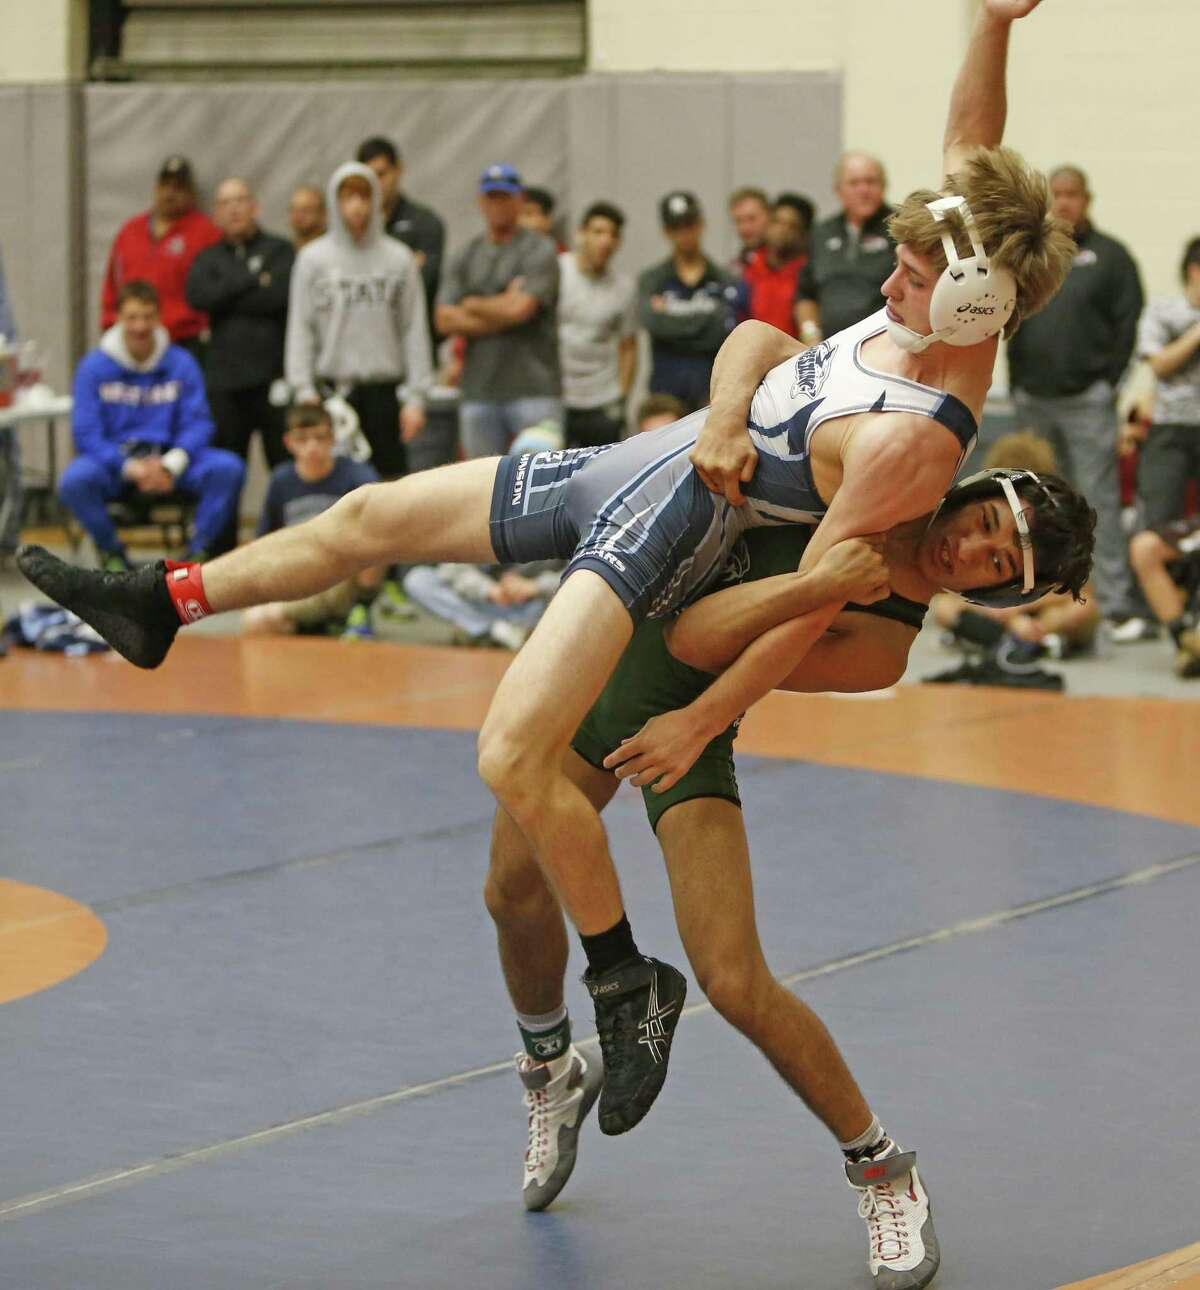 Garrett Mathews,Johnston HS, is thrown by Yahya Maqaui,Reagan in 120 lb division but won the match from the Region IV-6A wrestling meet on Saturday, February 18, 3017 at Littleton Gym